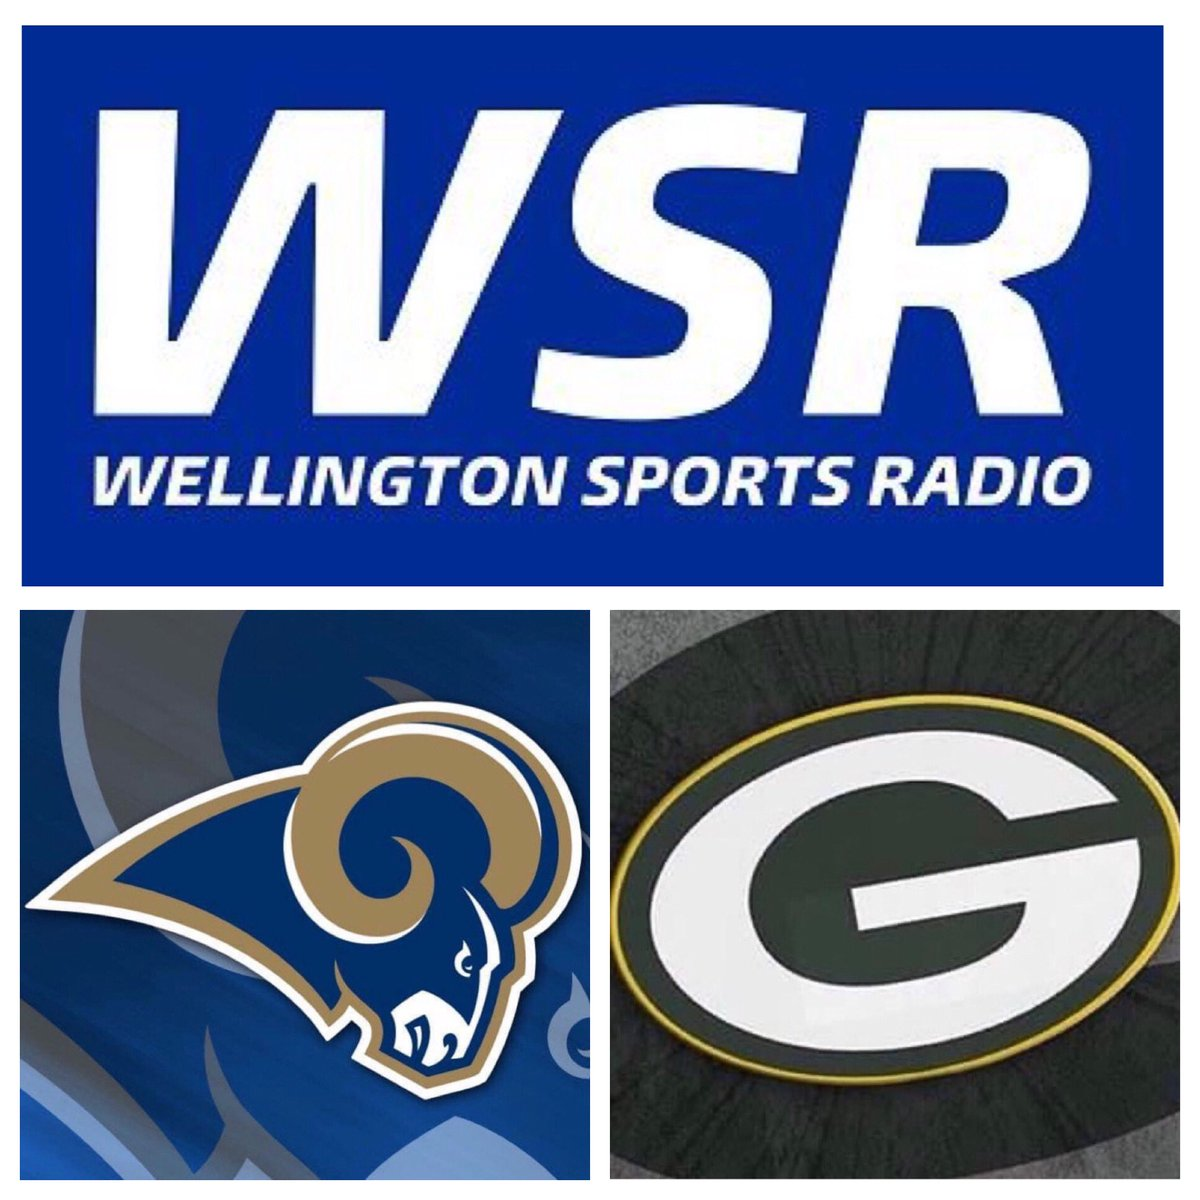 Tune in for a live call of #Rams@ #Packerson @wsportsradio! #NFL #NFLDivisional #LARvsGB #RamsHouse#GoPackGo#WSR #WellingtonSportsRadio